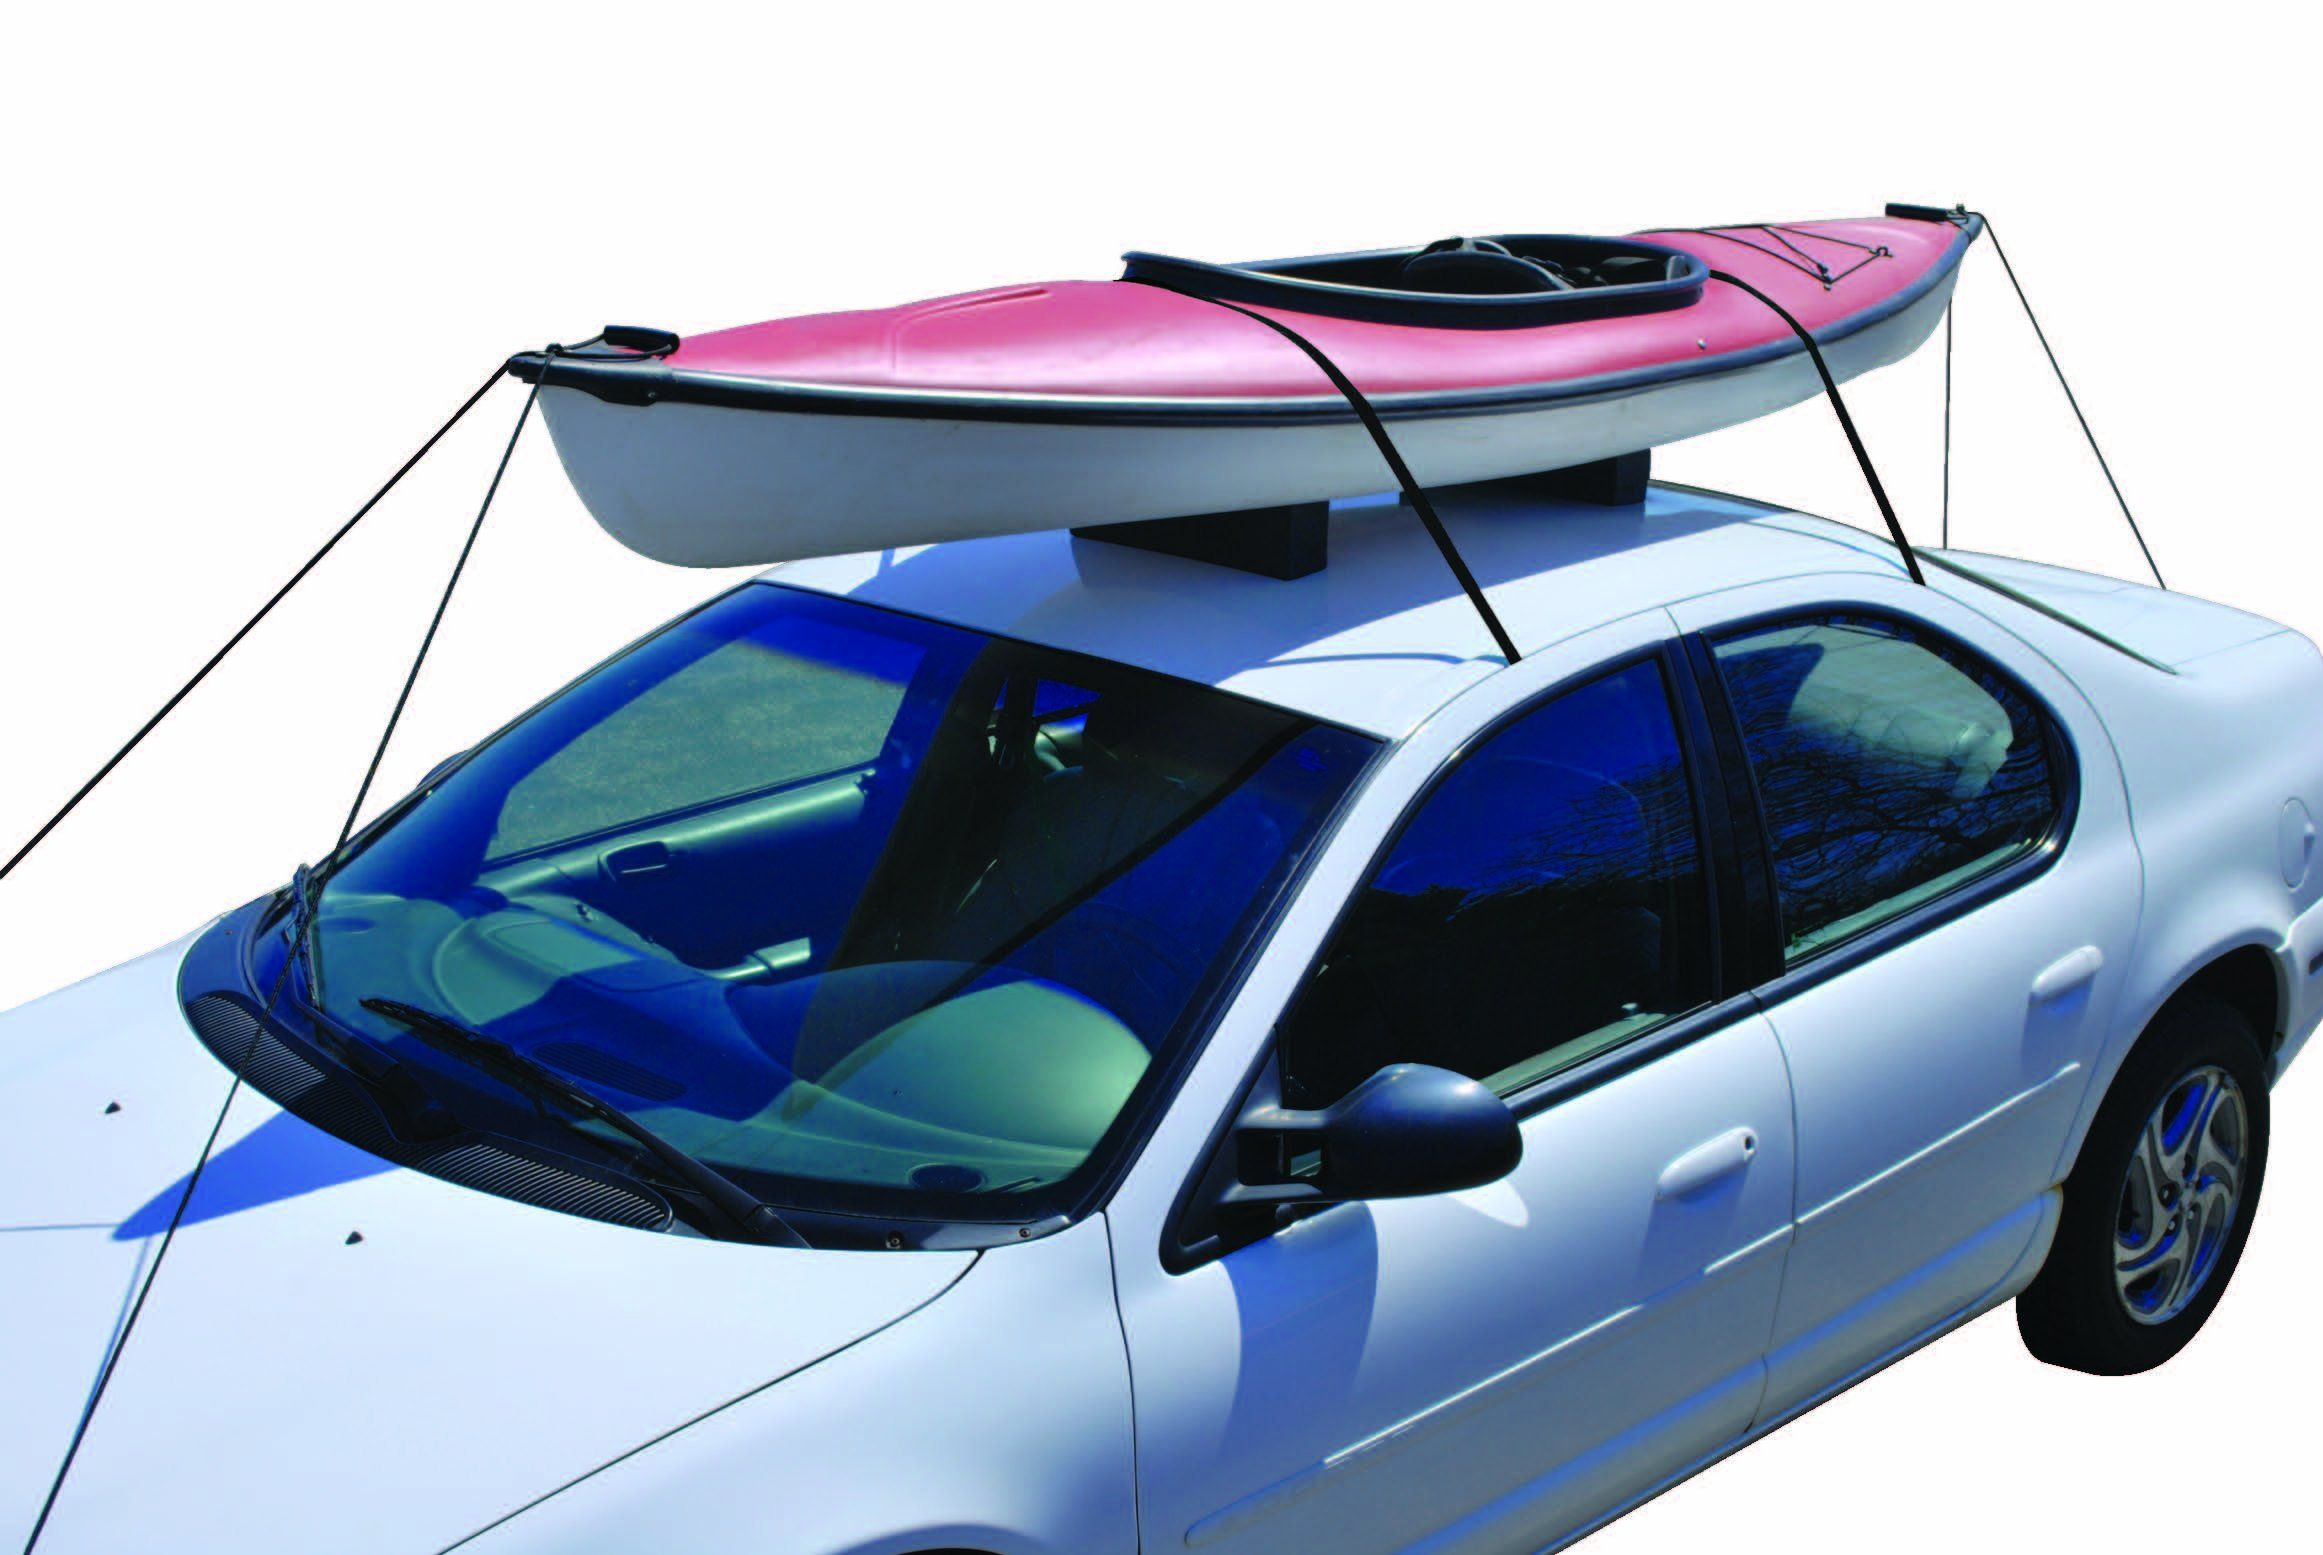 Car Top Kayak Carrier Kit To Carry Your Boat On An Auto Roof On Paddling Trips Holds A Single Kayak Safel Kayak Rack For Car Kayak Accessories Kayak Roof Rack